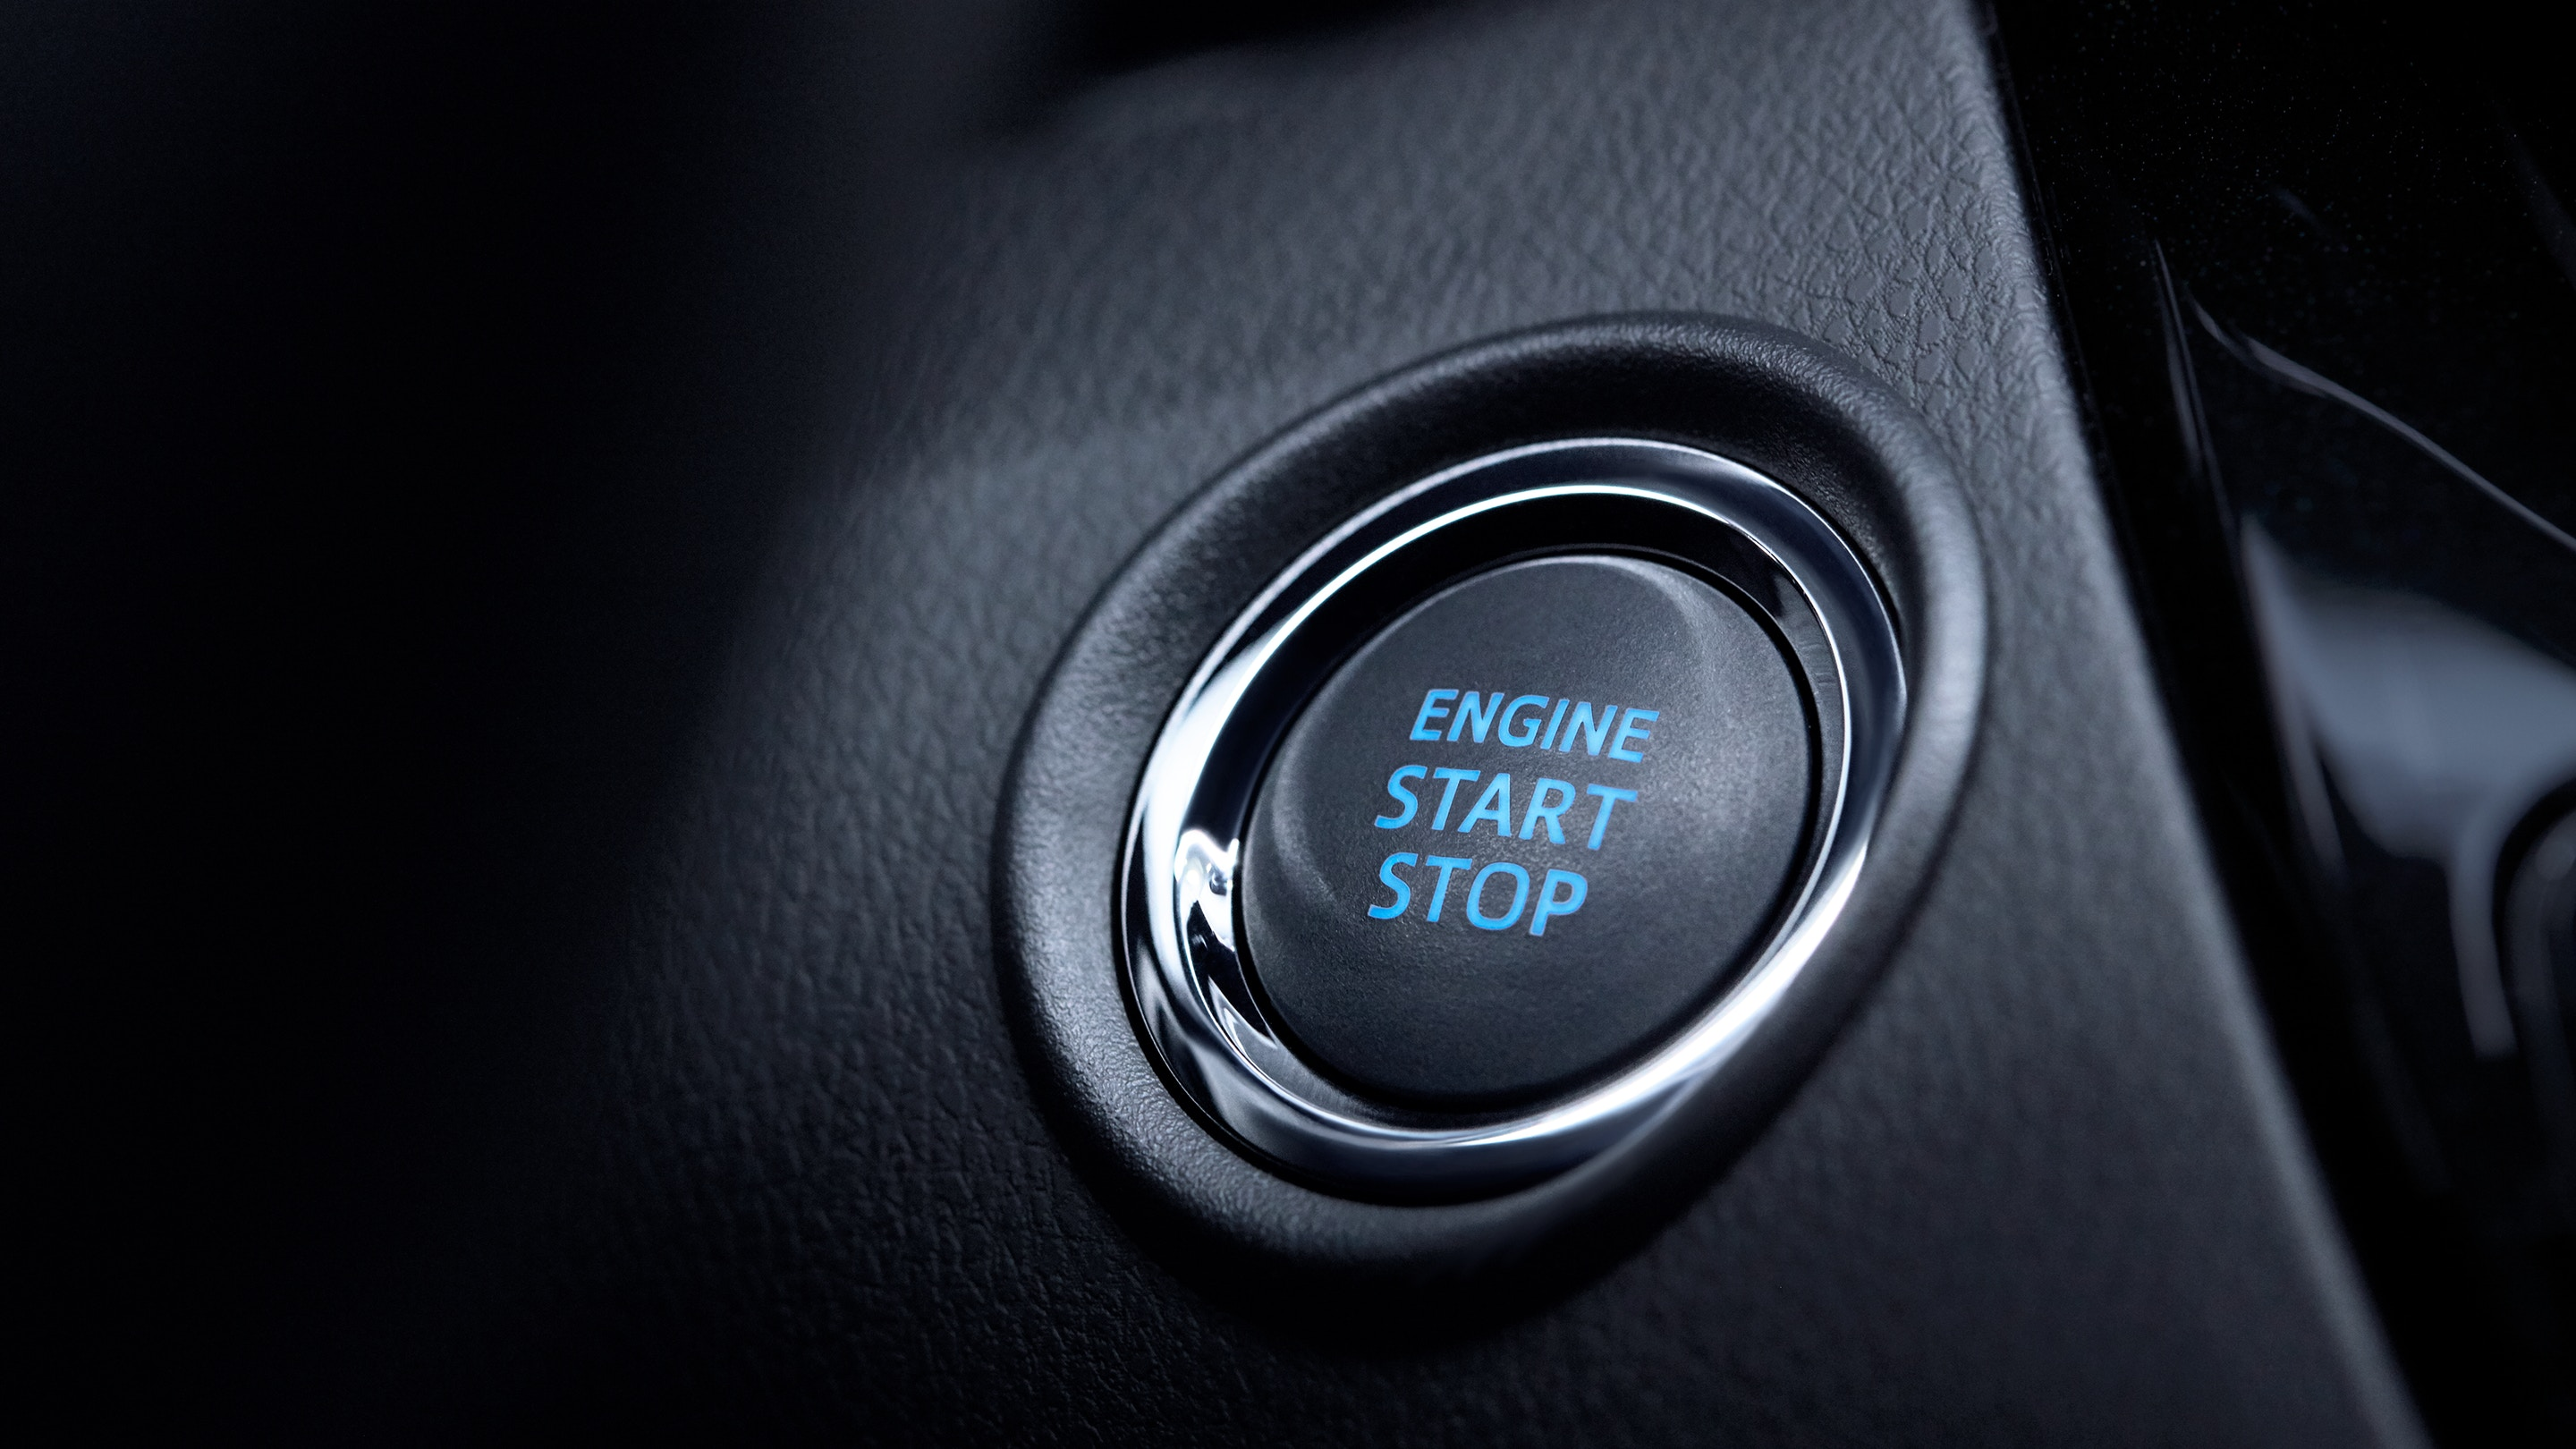 Adventure Starts With the Push Of a Button!